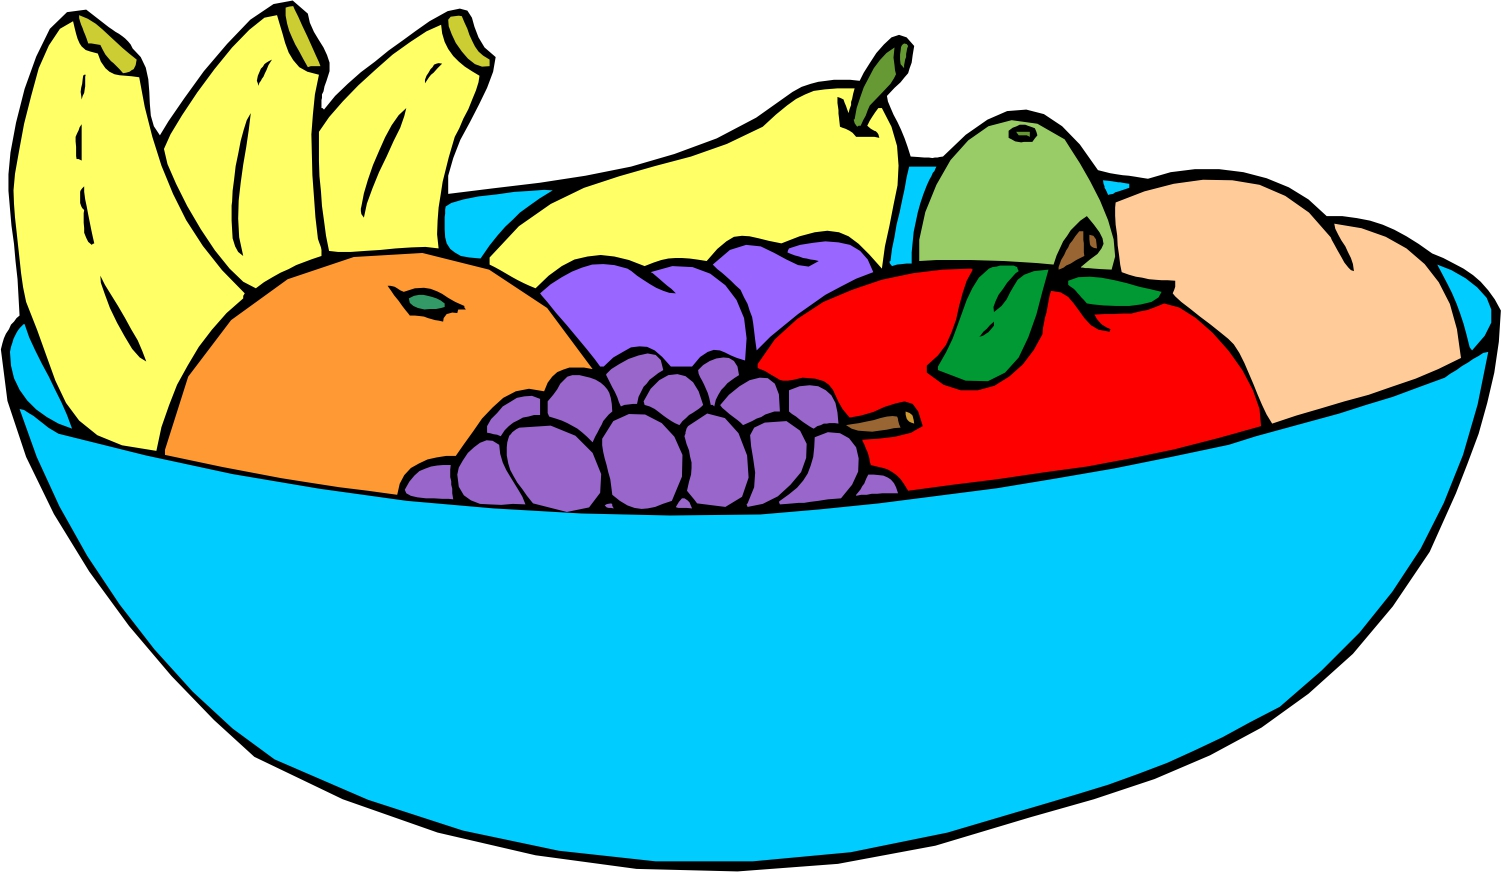 1501x872 Bowl Of Fruit Clipart